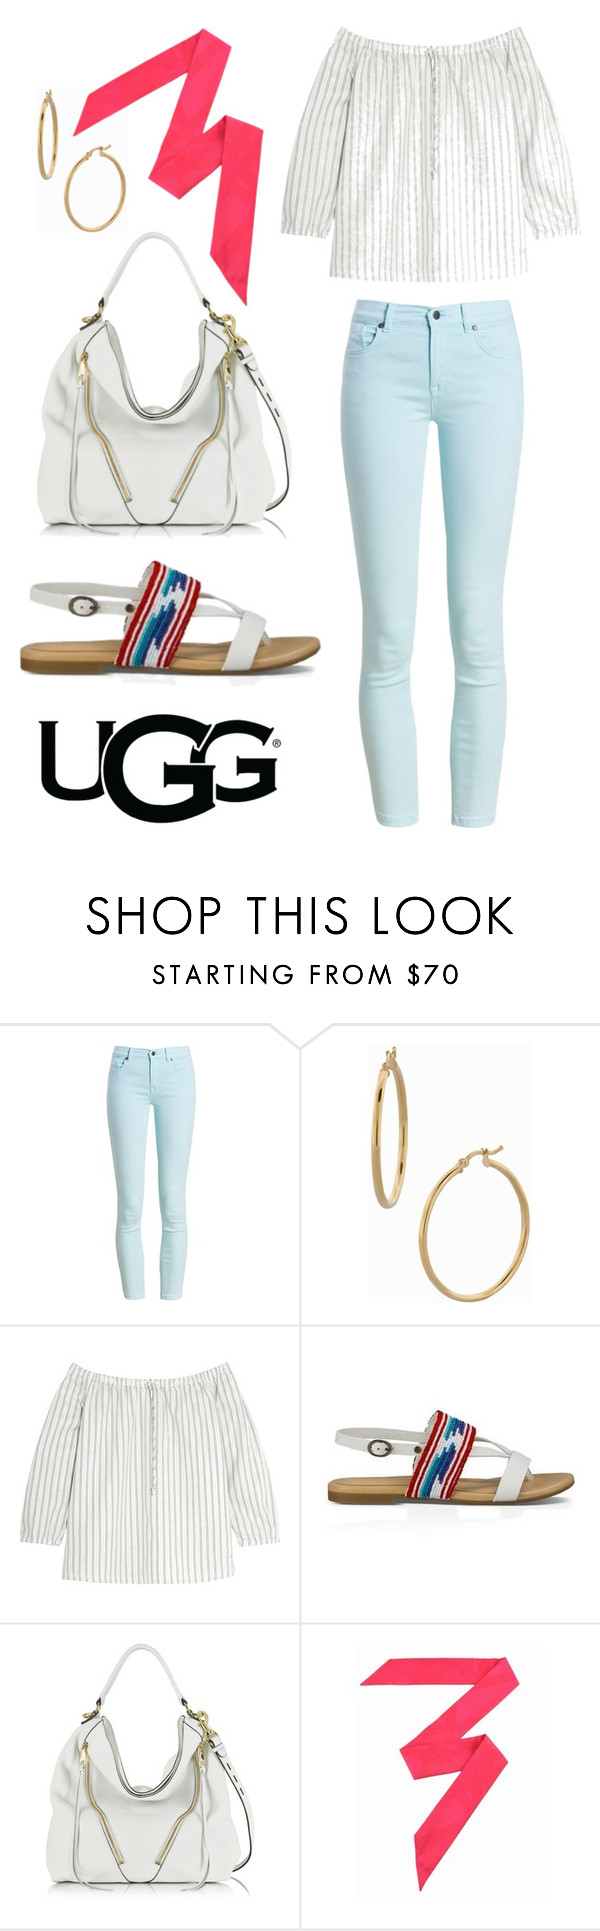 """Play With Prints In UGG: Contest Entry"" by roxanna-kingston ❤ liked on Polyvore featuring UGG Australia, Barbour, Bony Levy, Madewell, Rebecca Minkoff, Hermès and thisisugg"